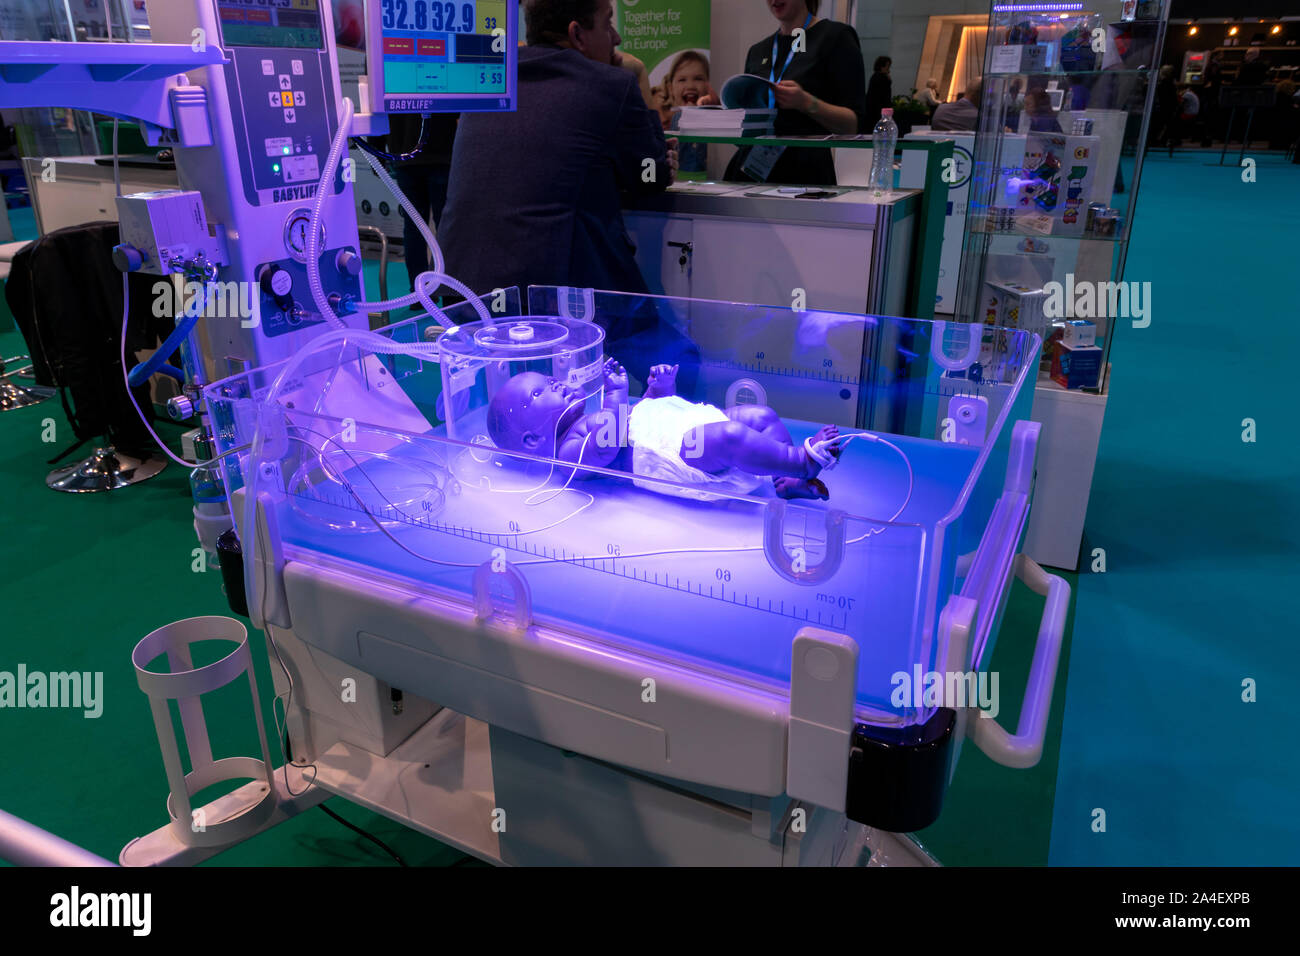 BUDAPEST, HUNGARY / OCTOBER 09, 2019: Hungaromed medical technology trade show. Modern neonatal life support unit on display. Stock Photo